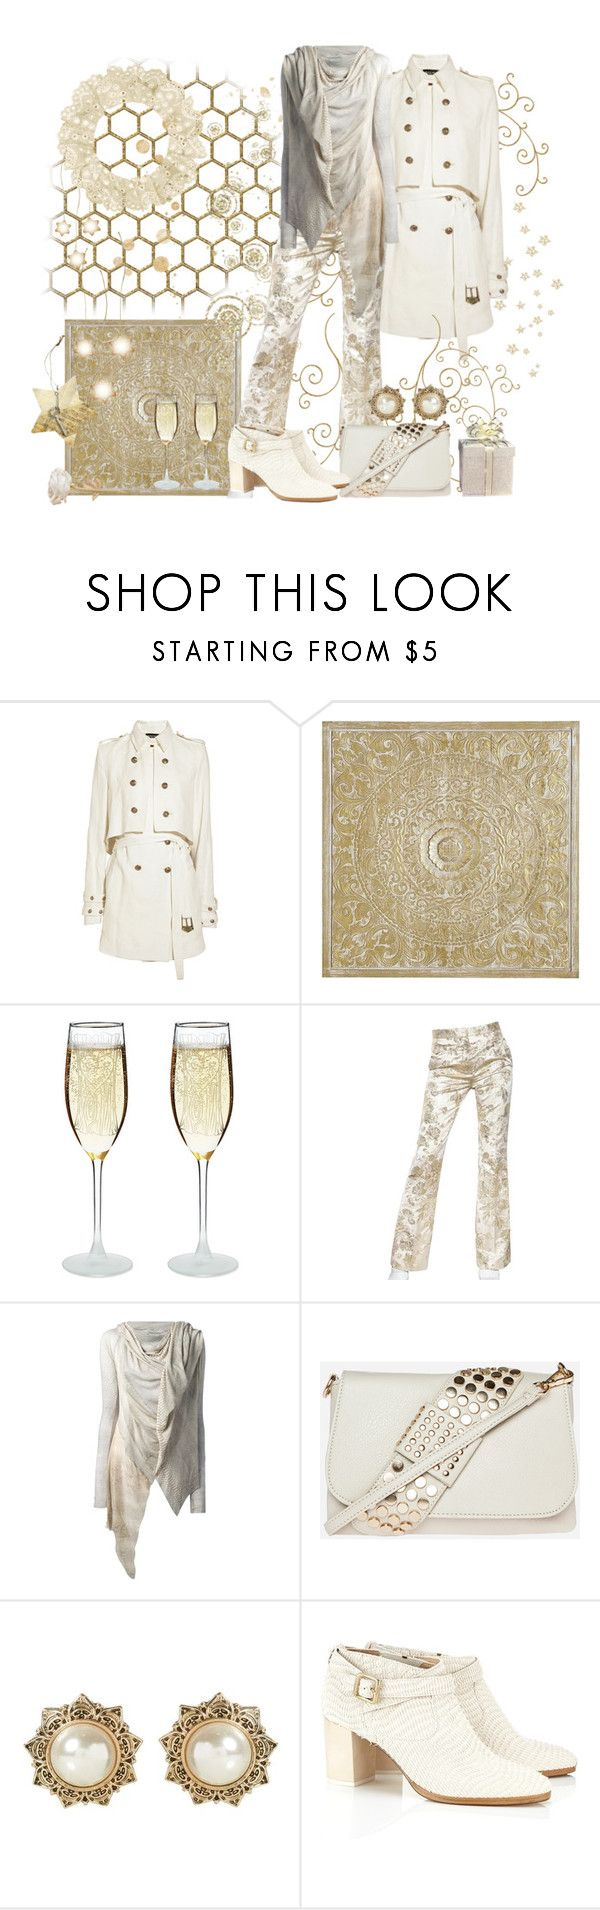 """ROCHAS Damask Trousers/IF SIX WAS NINE Top"" by skpg ❤ liked on Polyvore featuring Balmain, Pier 1 Imports, Rochas, If Six Was Nine and Zoe Lee"